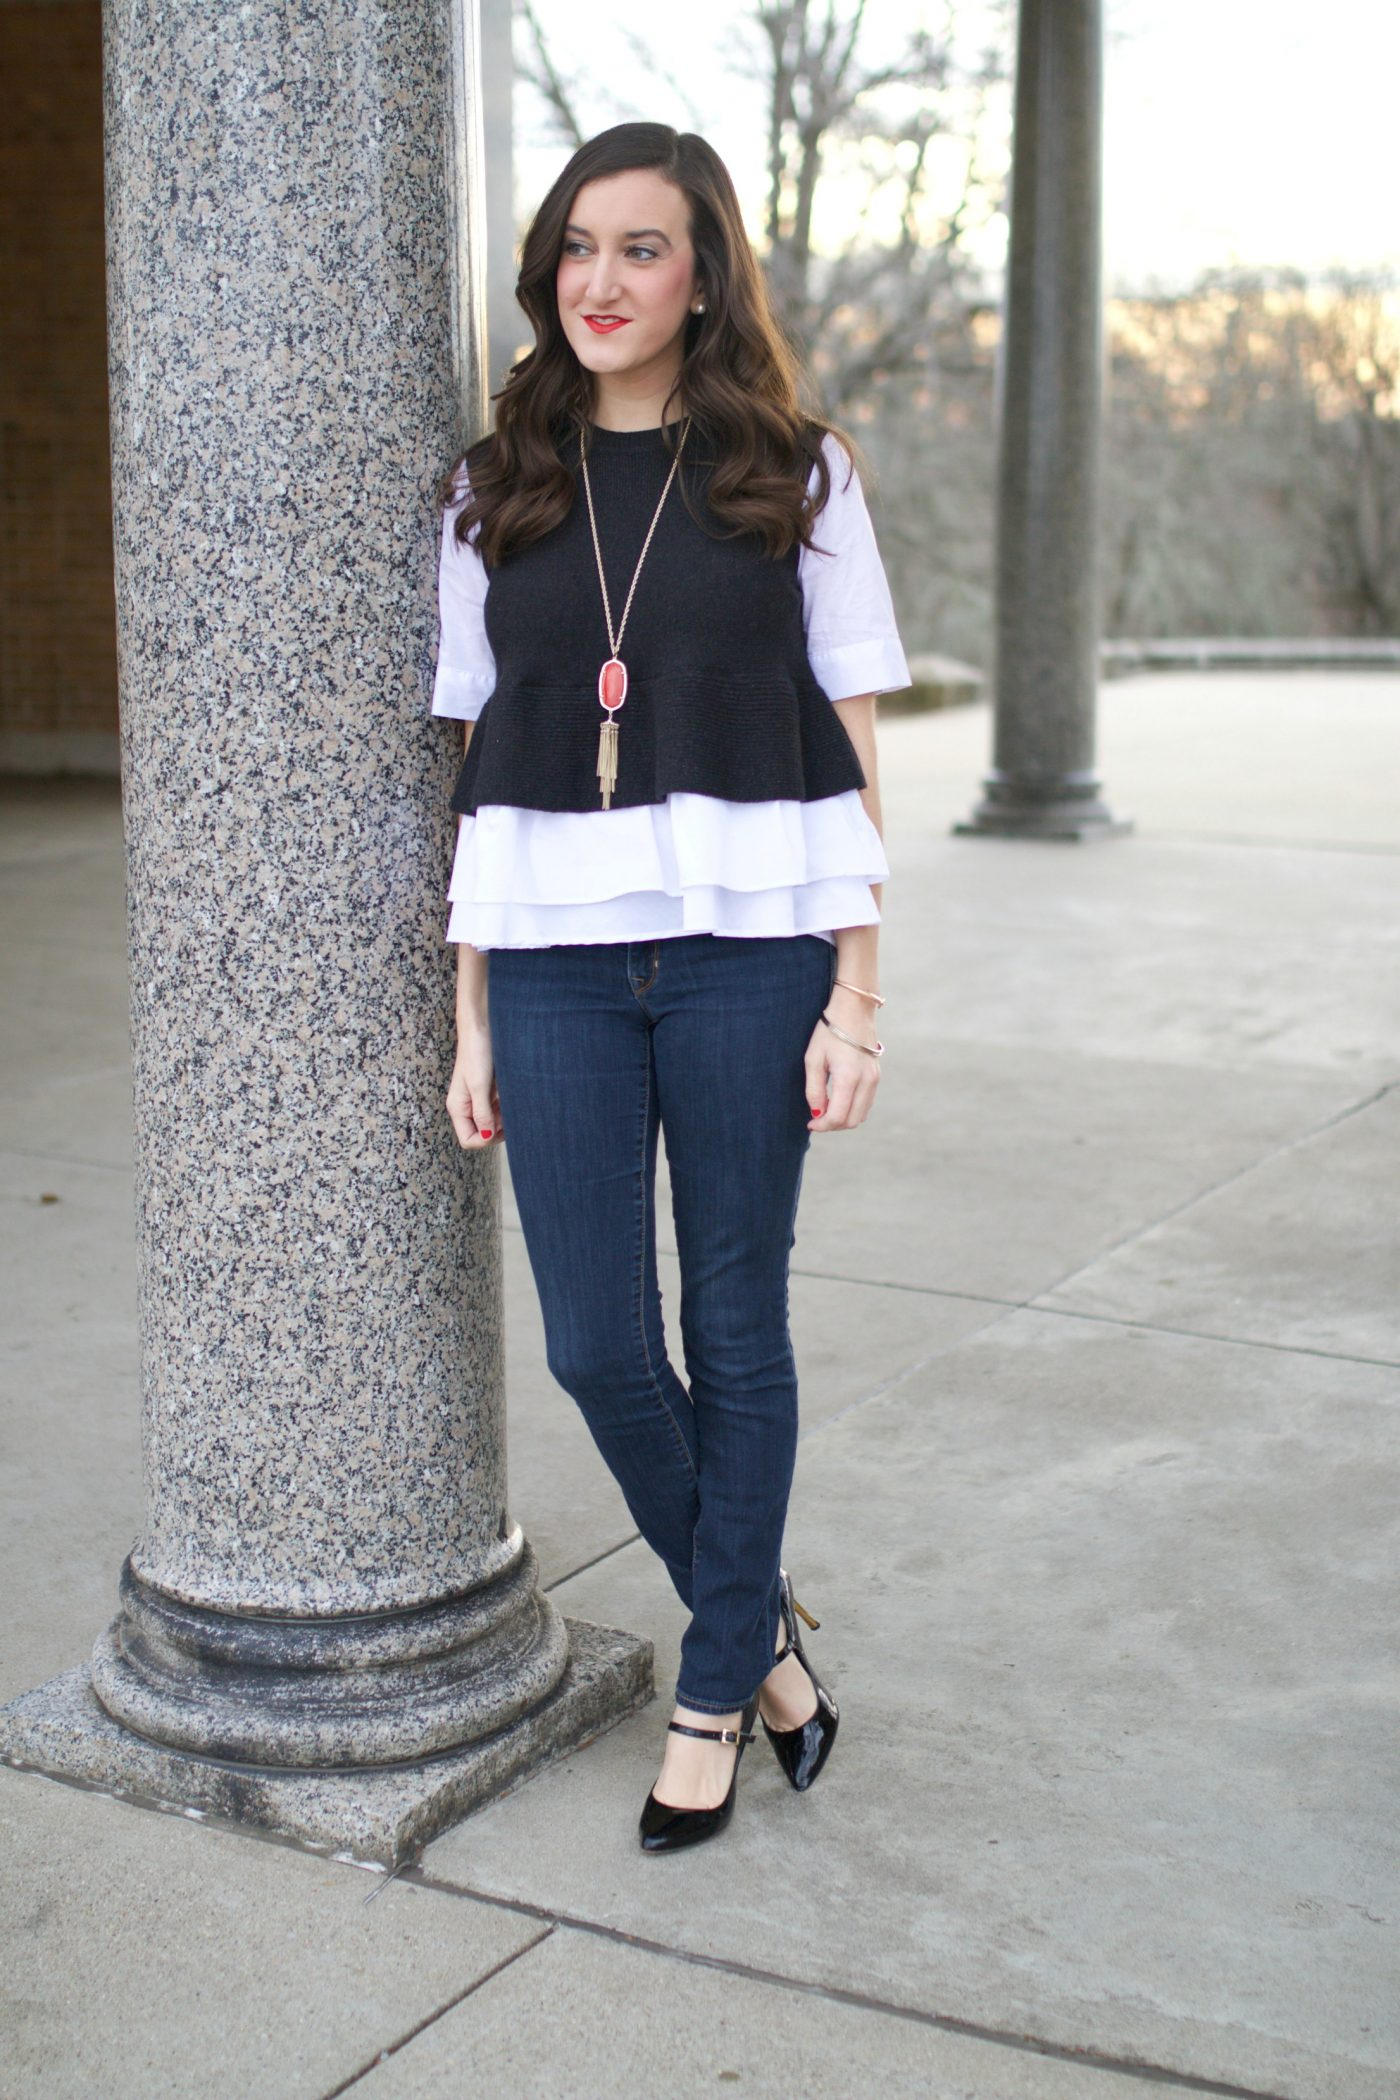 Ruffled Top with Skinny Jeans